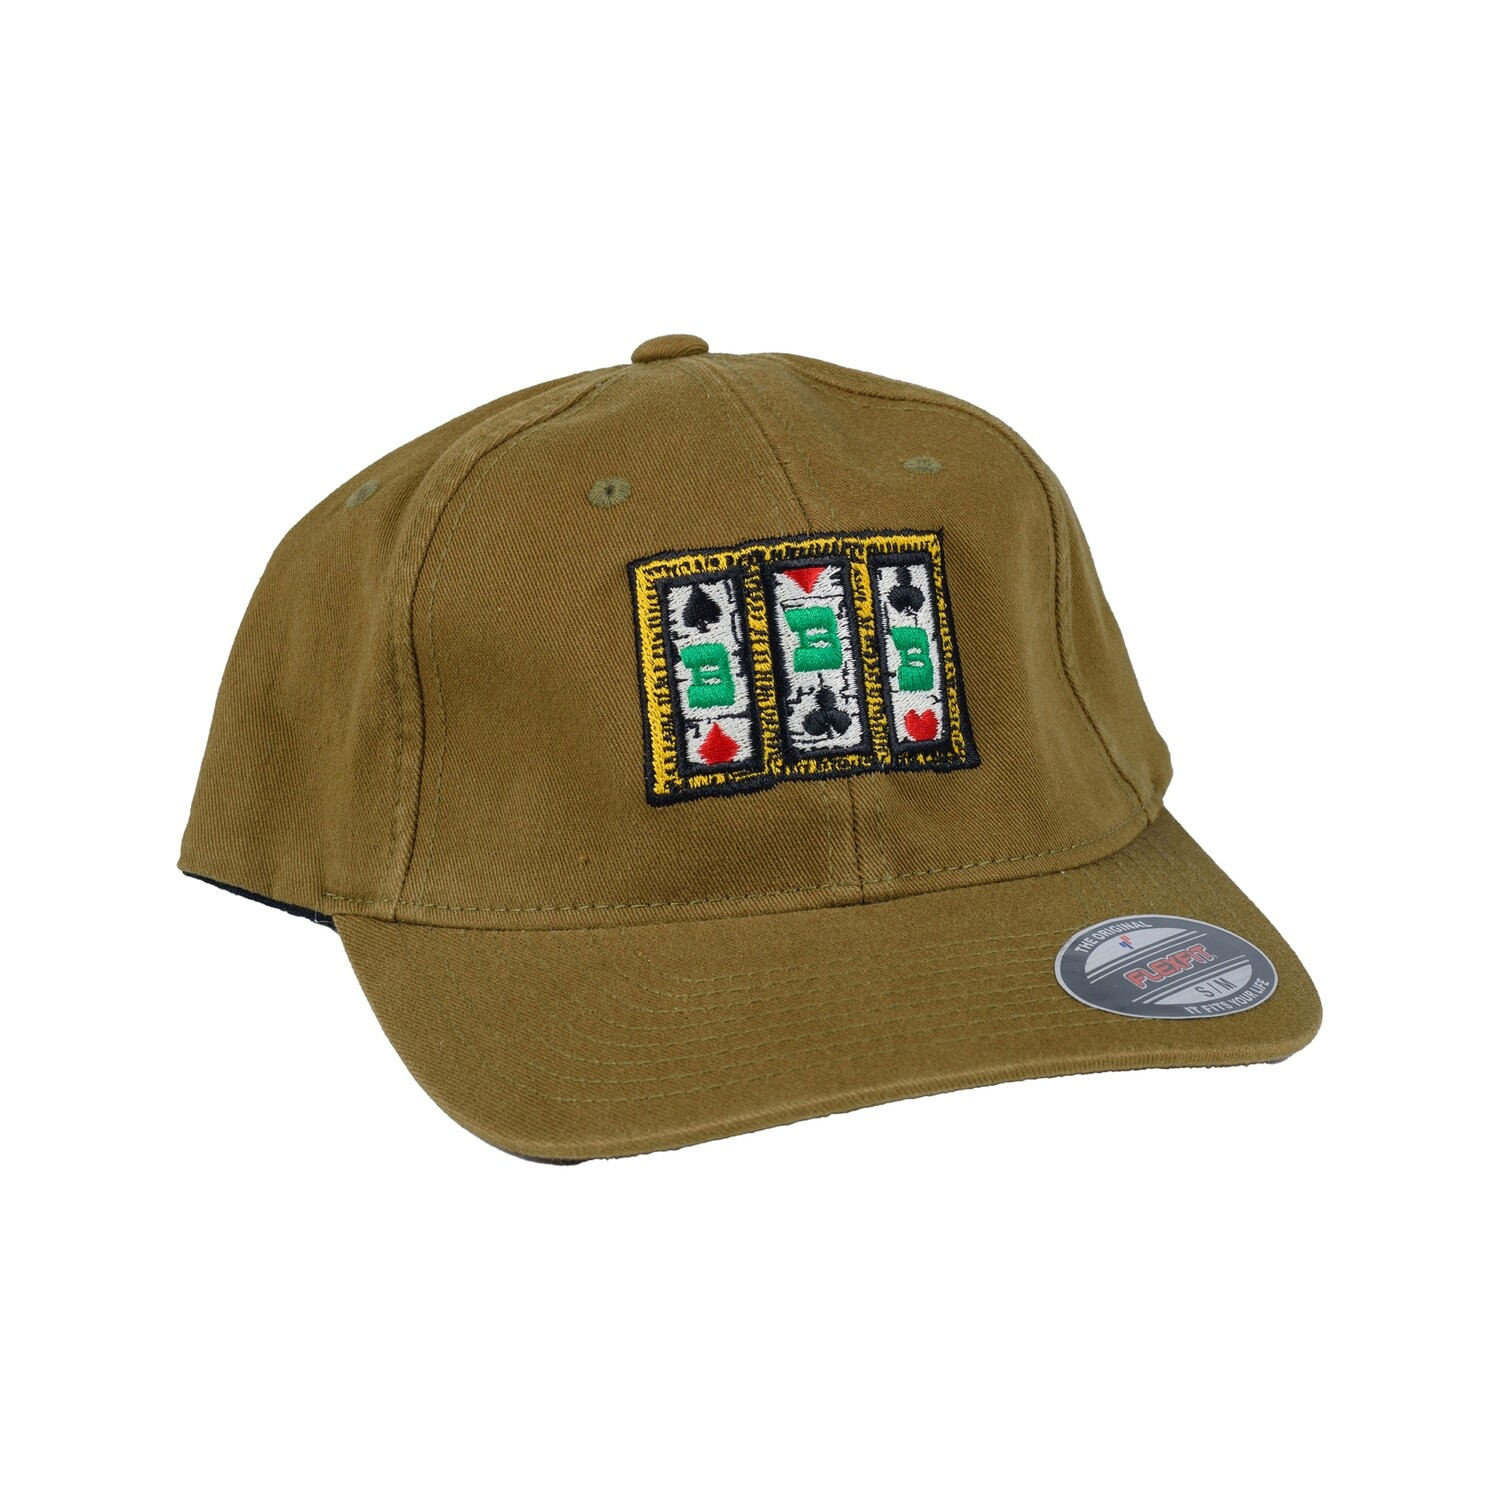 Slot Fitted Cap, Camel